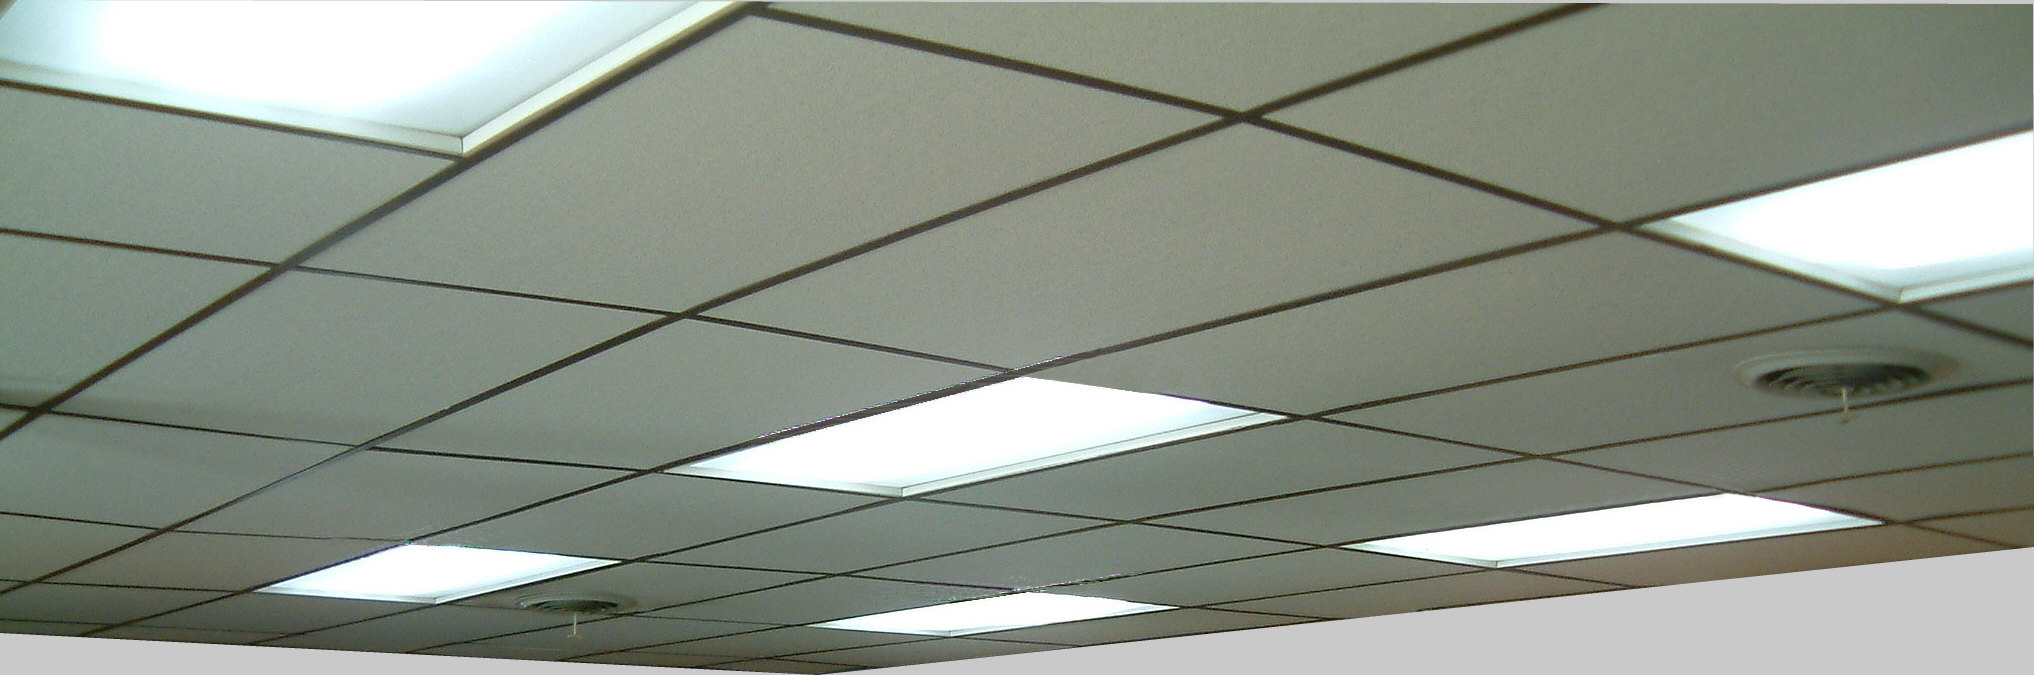 Drop ceiling pictures 17 best images about drop ceiling on for Drop ceiling images